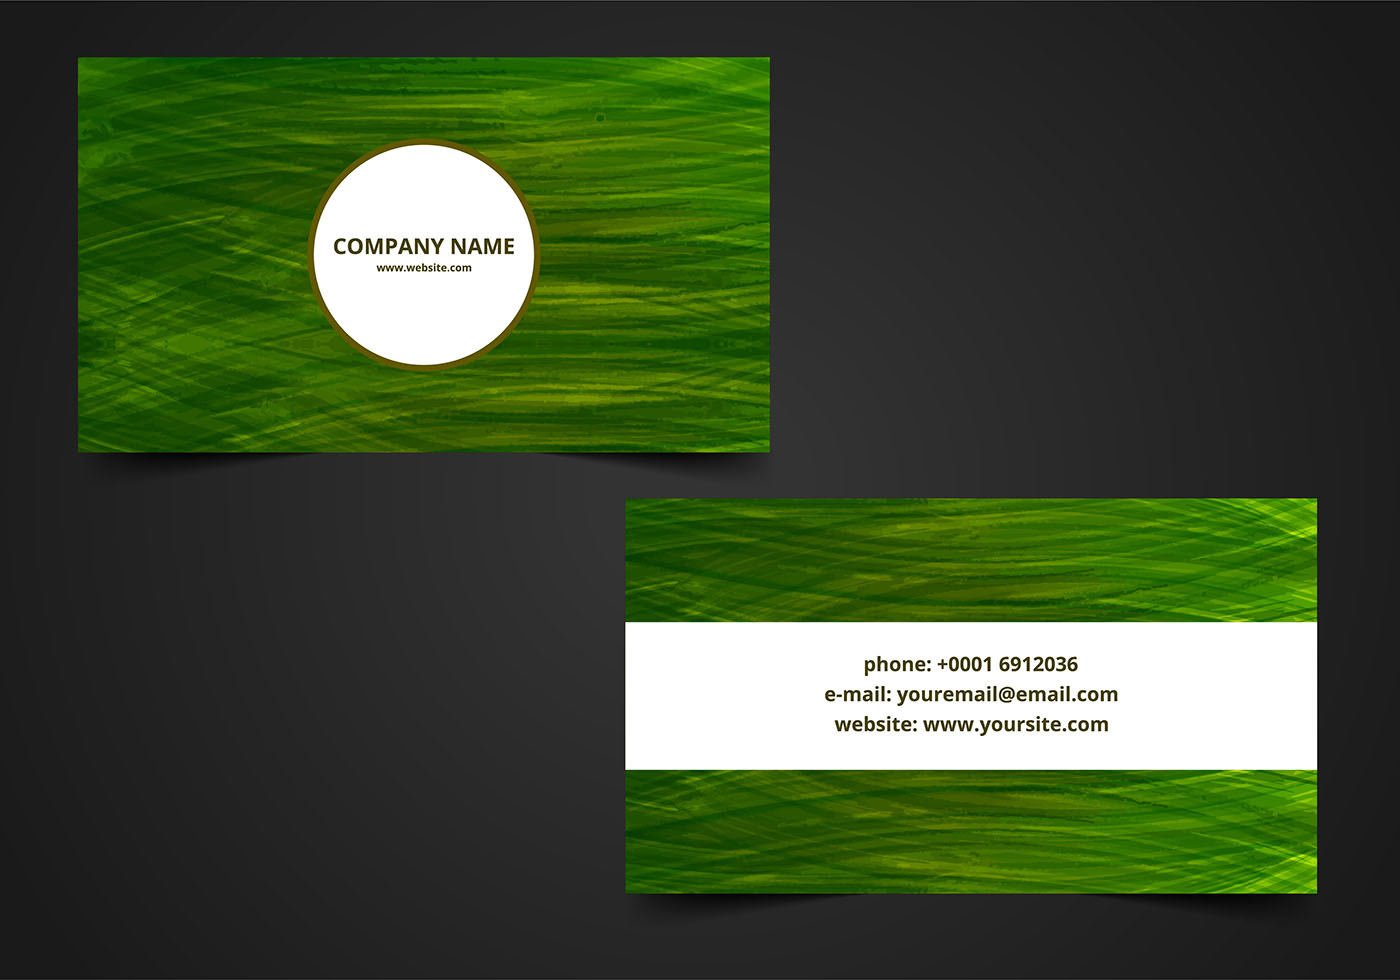 Visiting Card Background | www.imgkid.com - The Image Kid ...